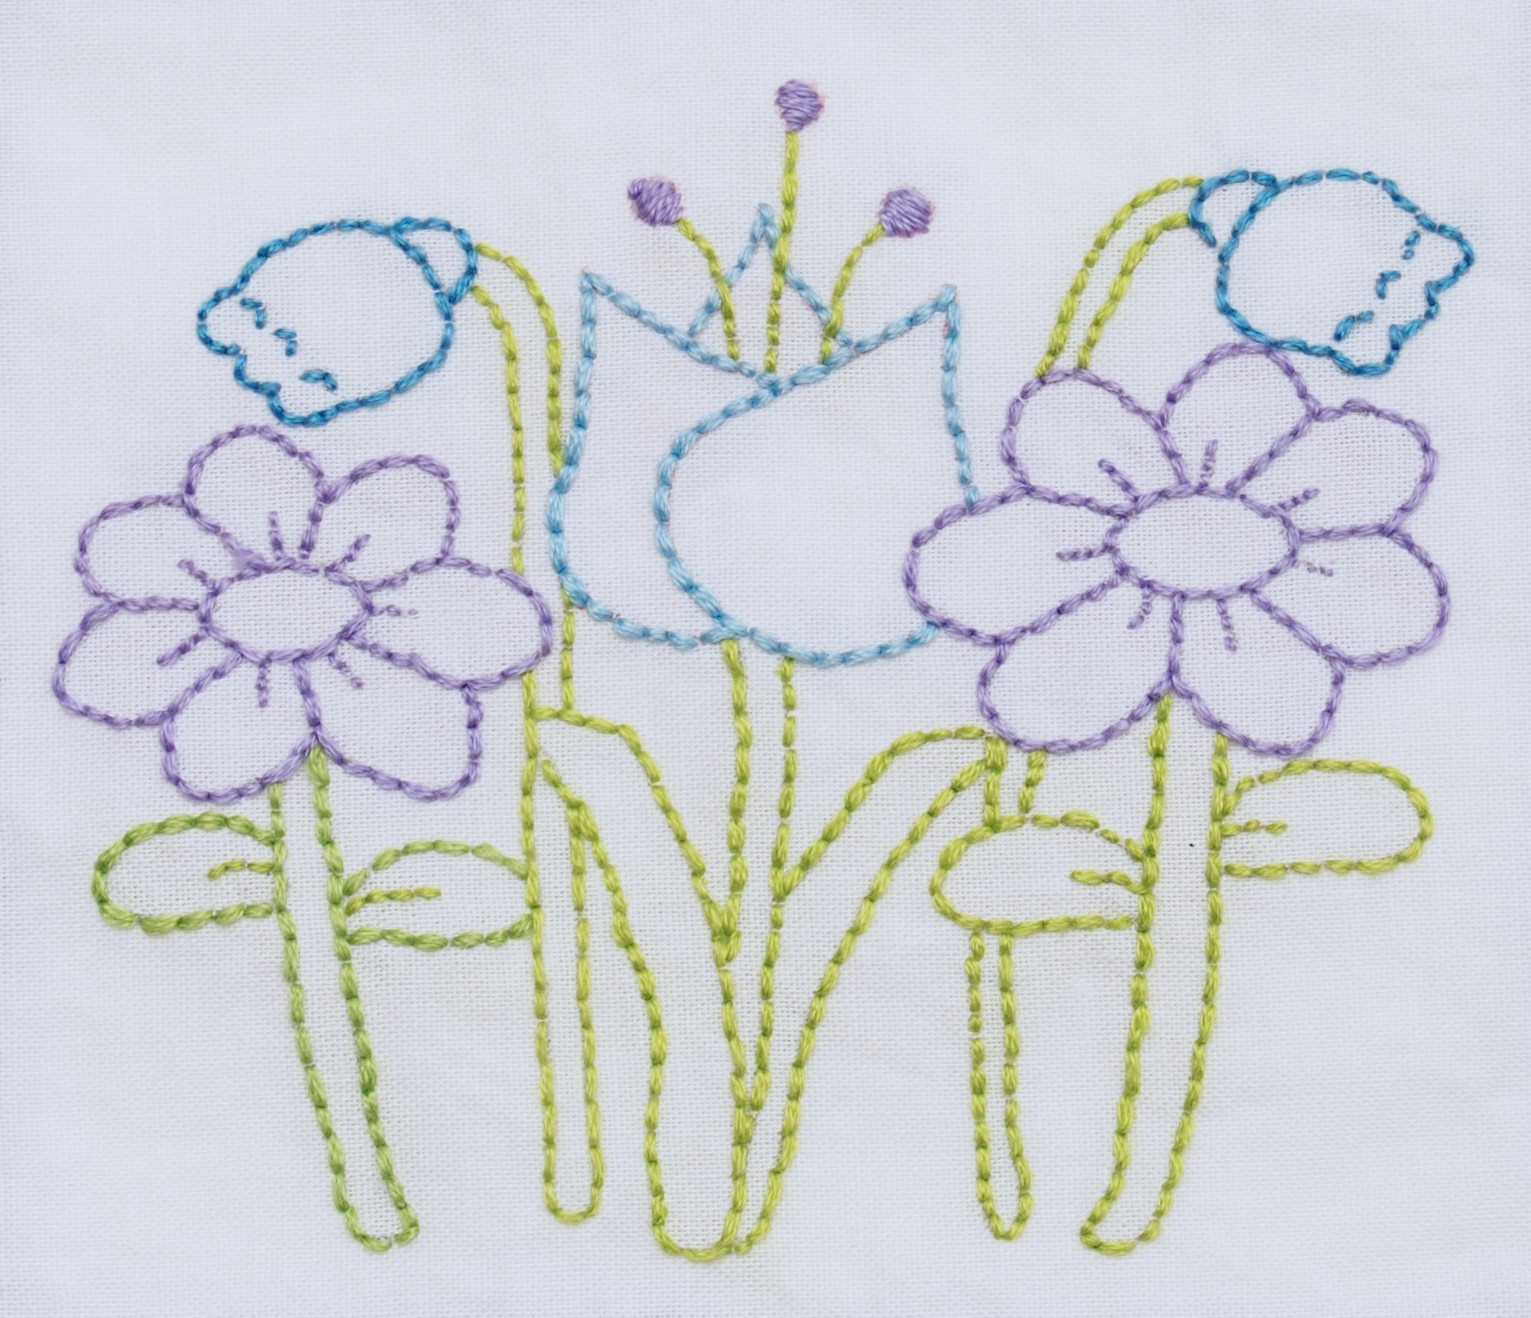 Free Hand Embroidery Pattern Free Simple Flower Embroidery Patterns Flowers Healthy